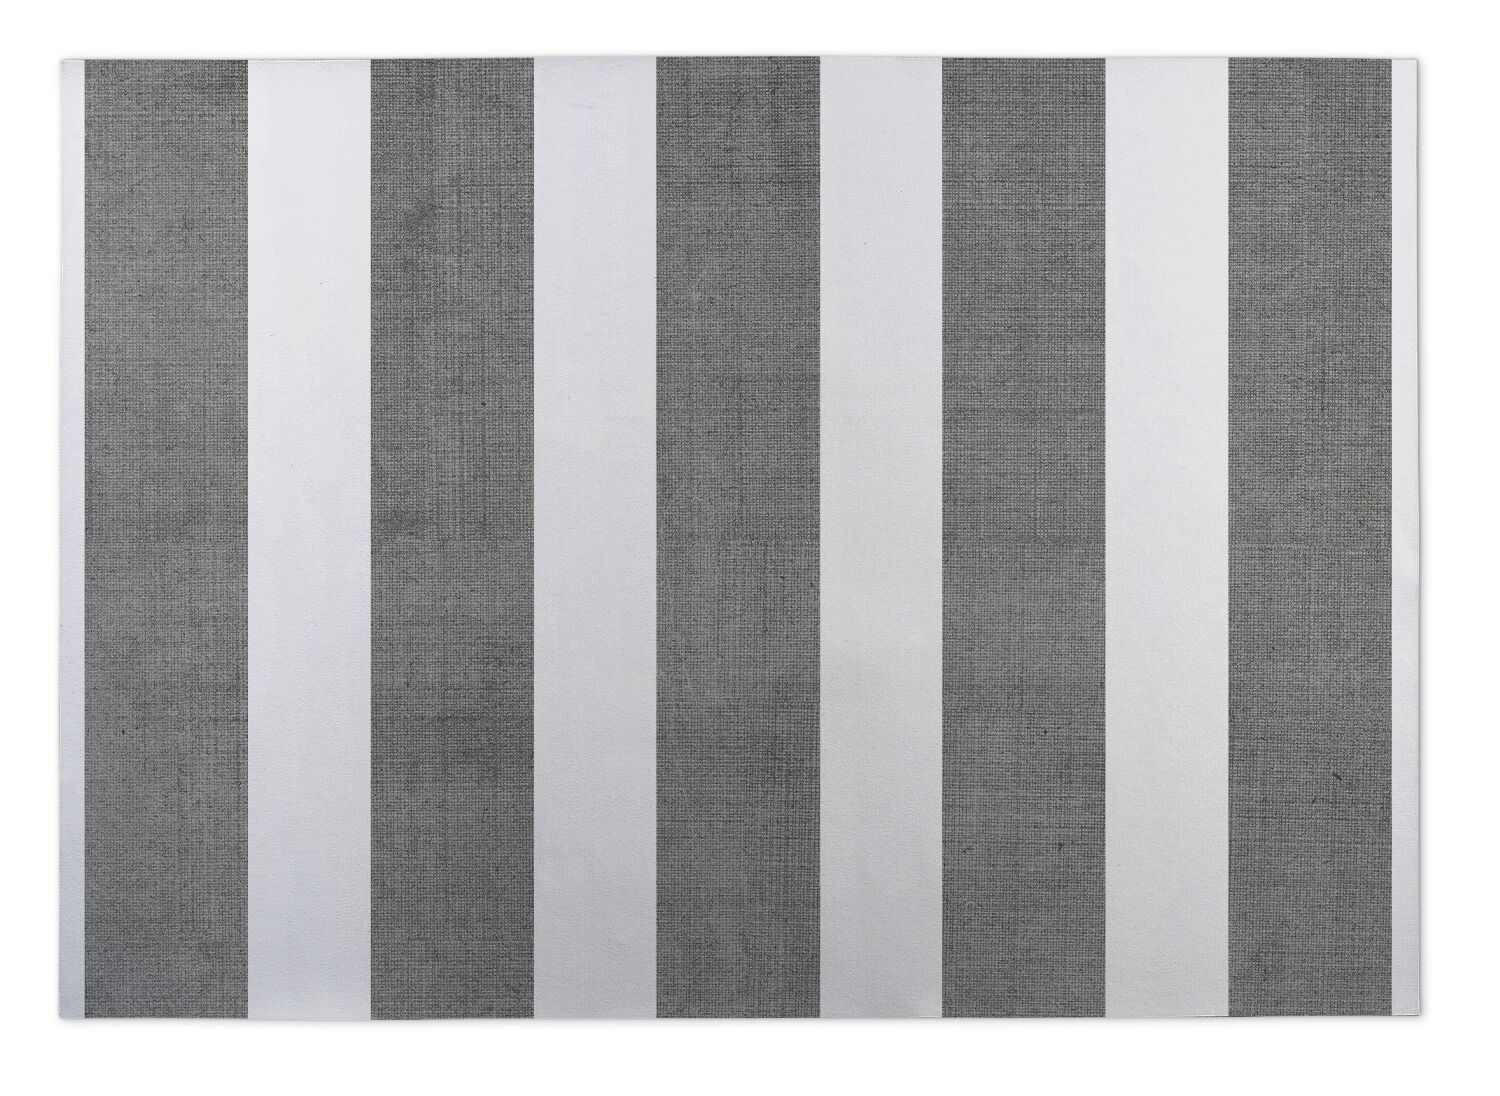 Oz Doormat Color: Charcoal/ White, Mat Size: Square 8'